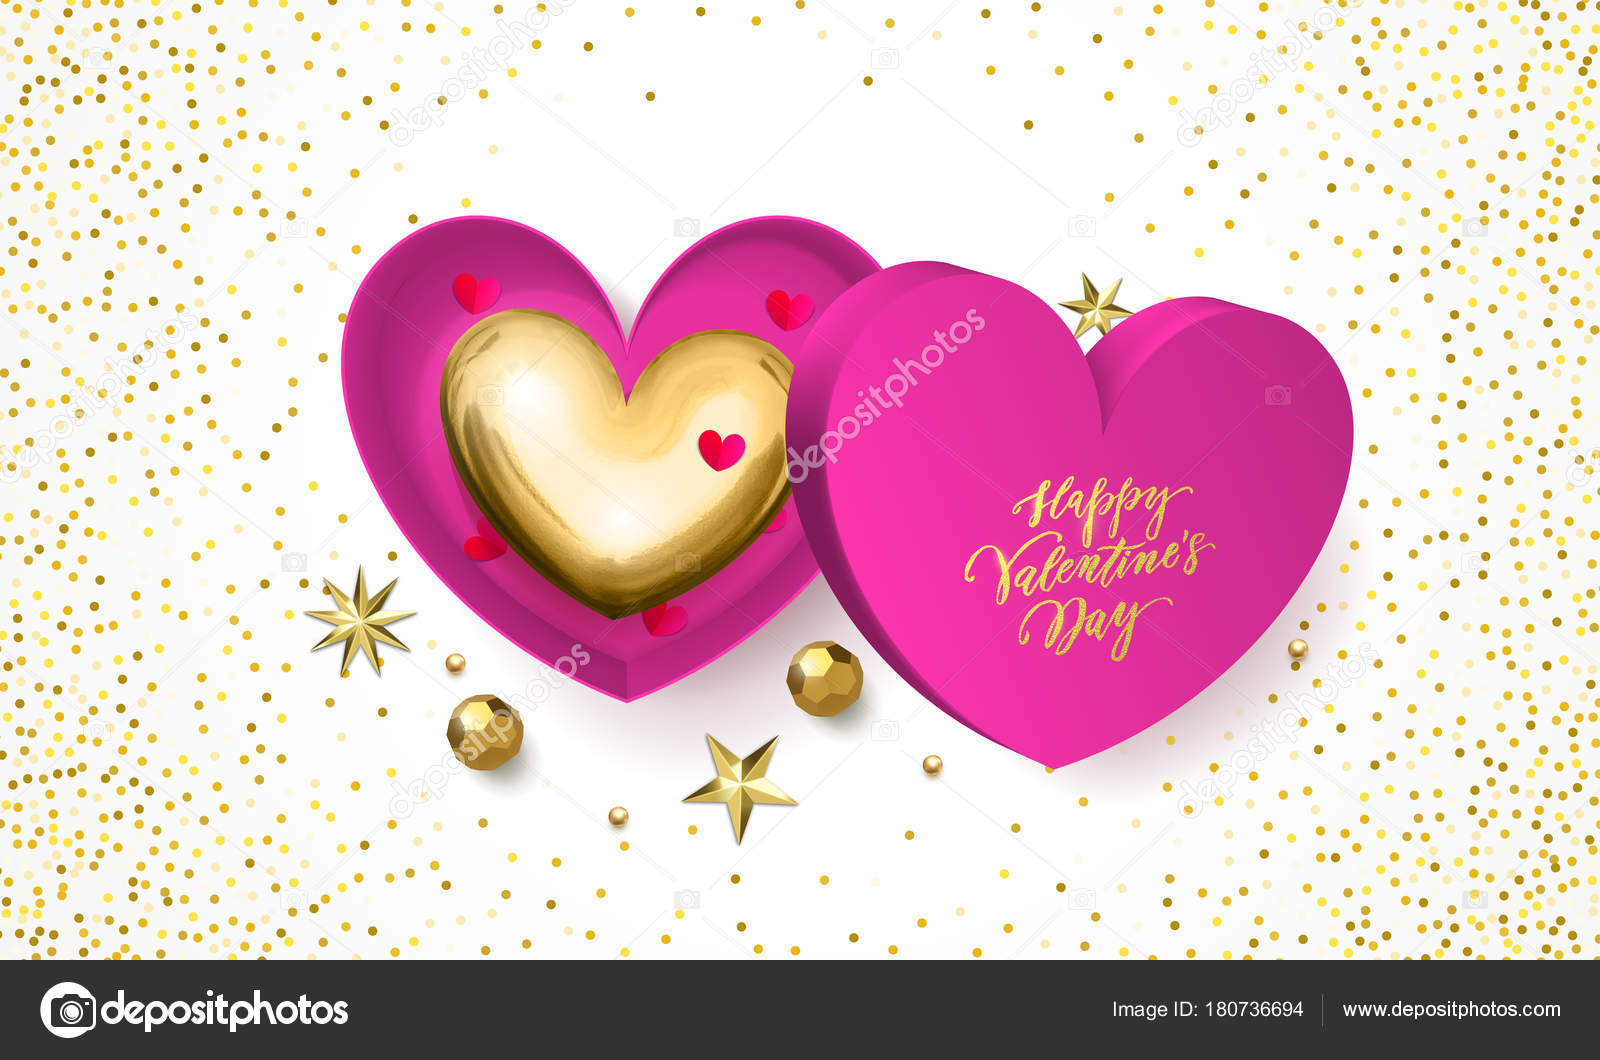 Happy Valentines Day Greeting Card Of Golden Heart In Pink Gift Box